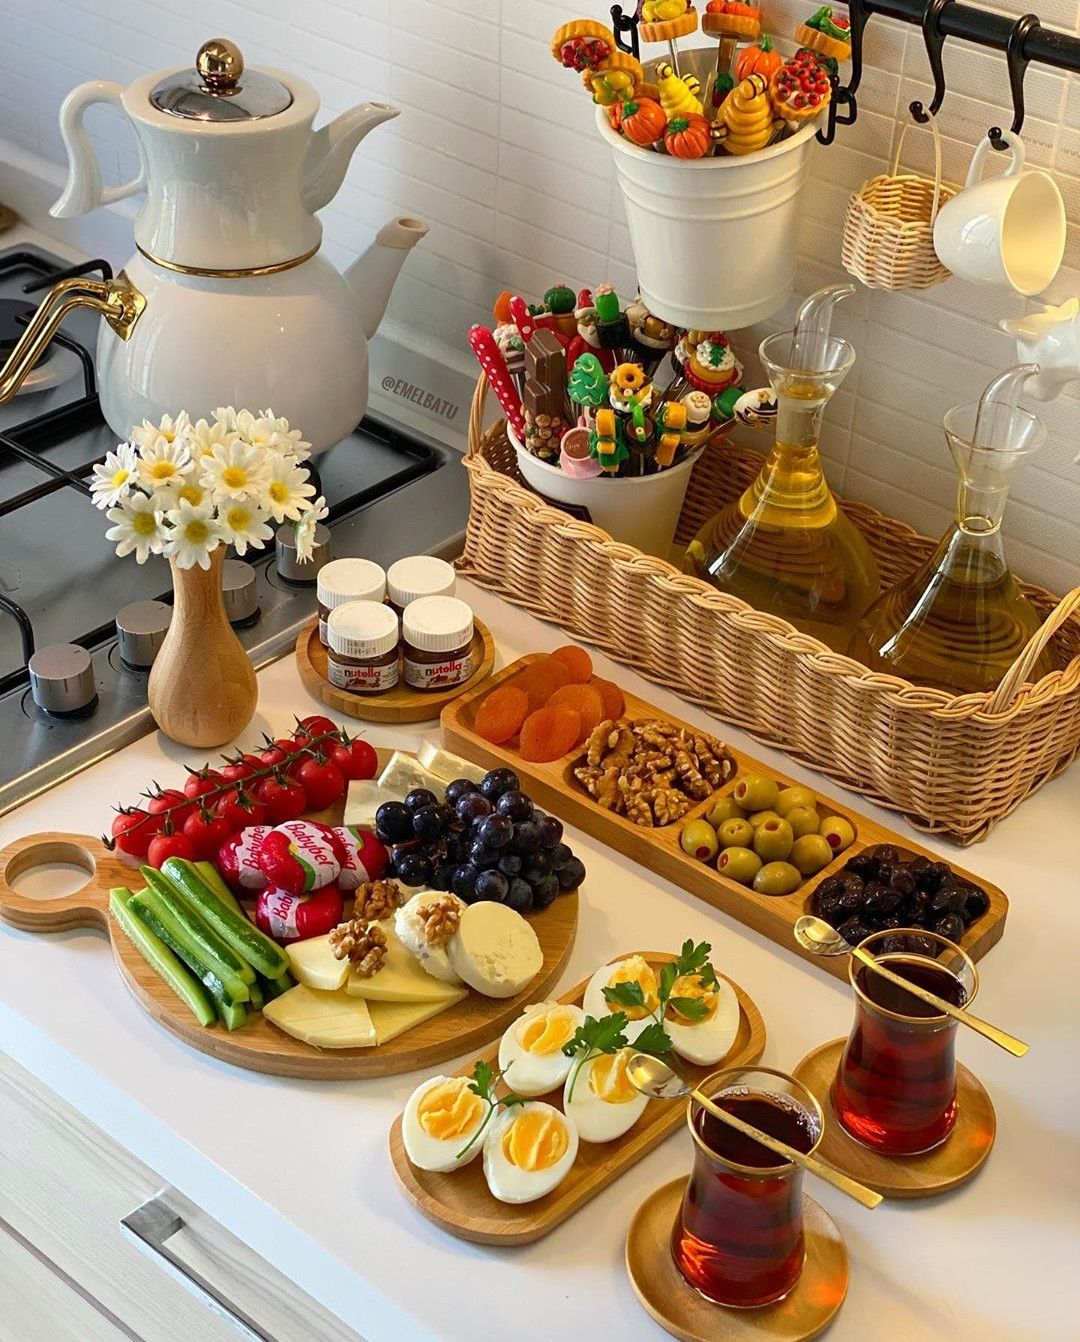 Pin By Justme On فطور ريوك Food Platters Buffet Food Food Displays